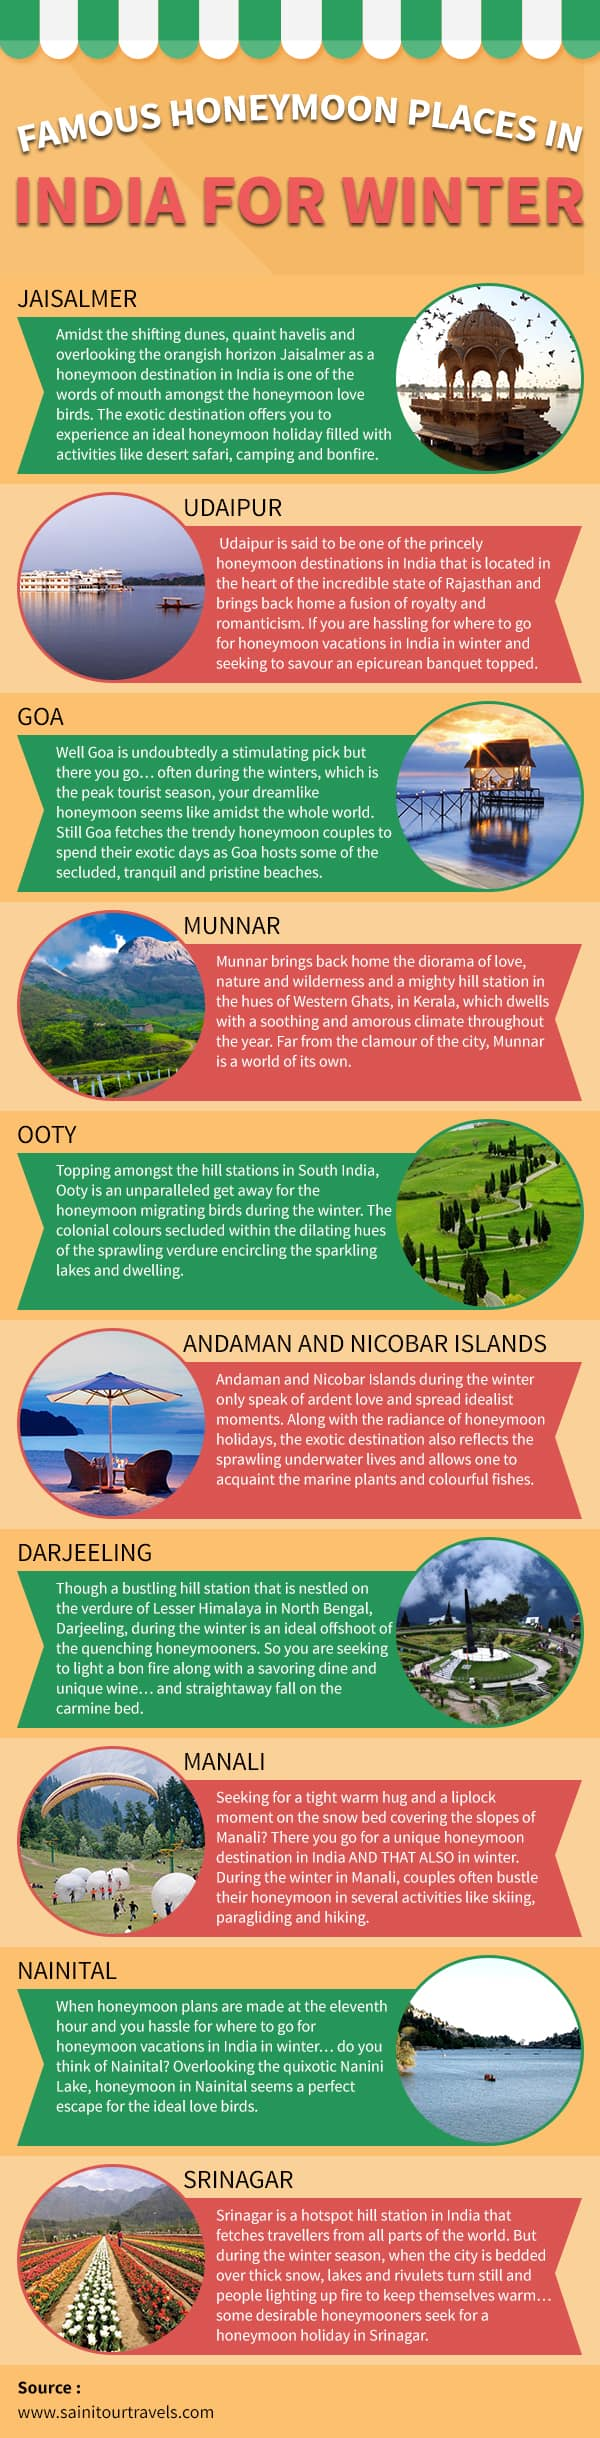 Famous Honeymoon Places in India for Winter